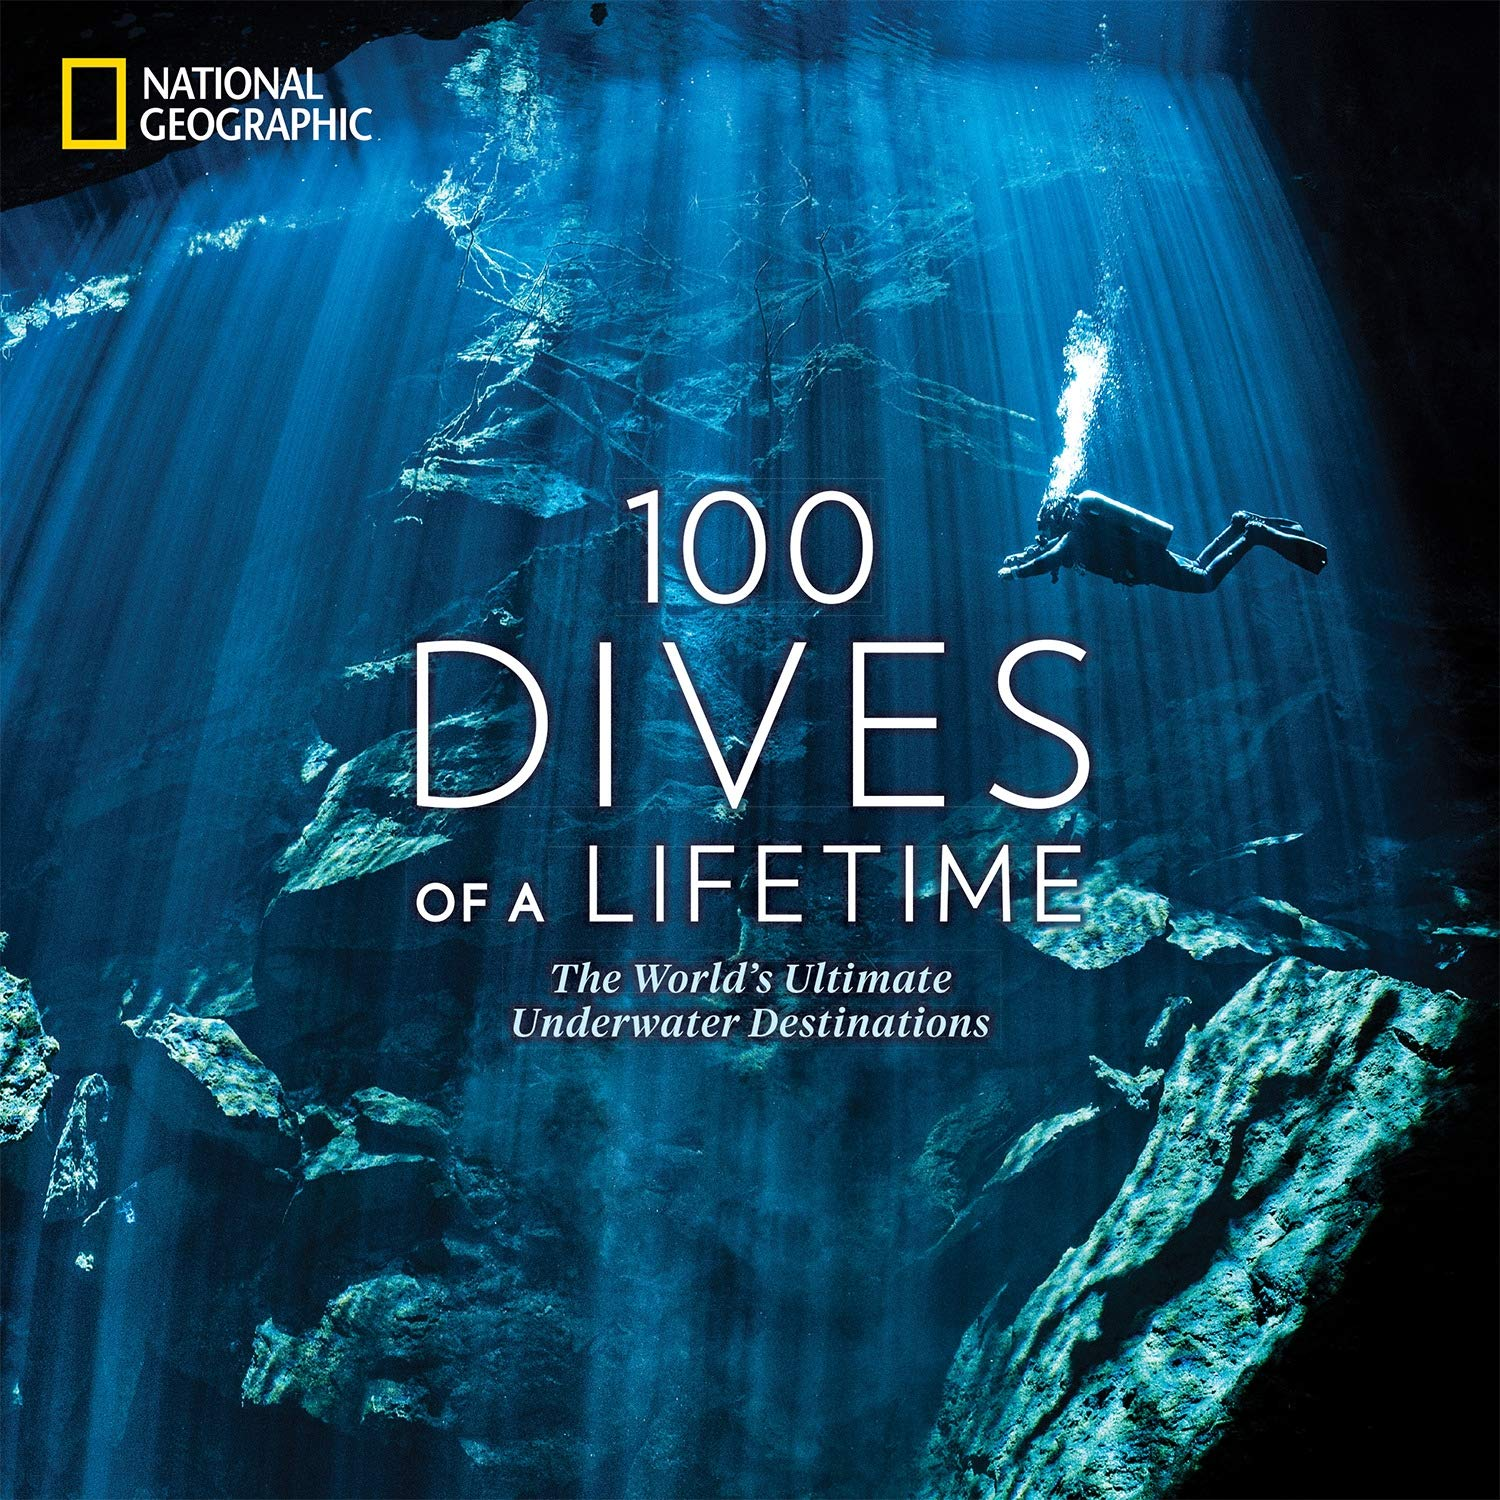 100 Dives of a Lifetime: The World's Ultimate Underwater Destinations by National Geographic